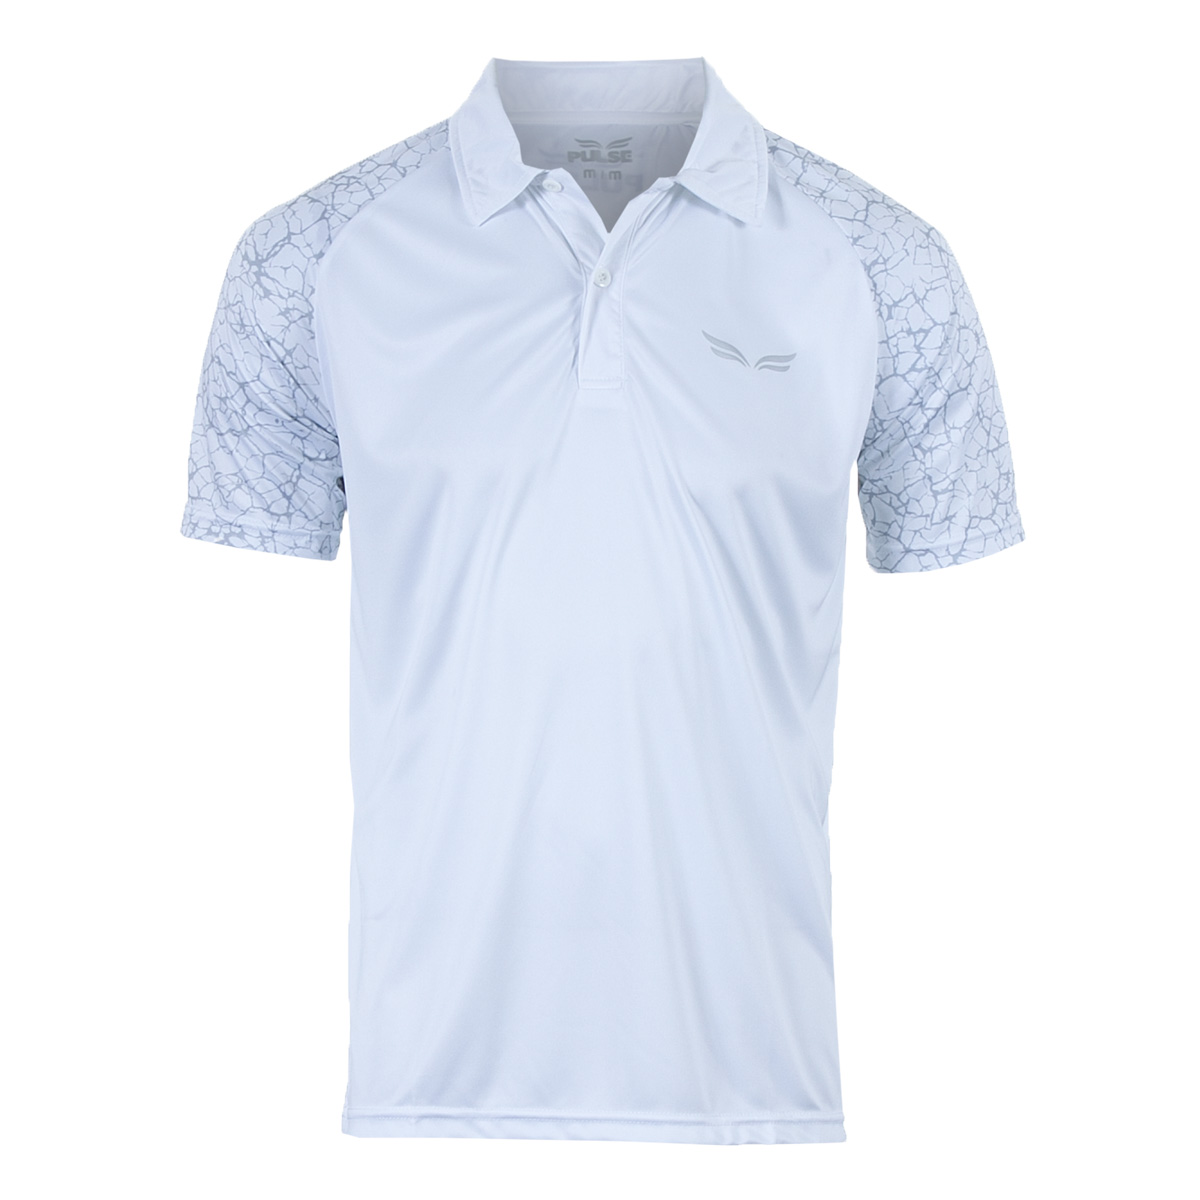 Camisa Polo Masc. Pulse Sports Casual - Branco